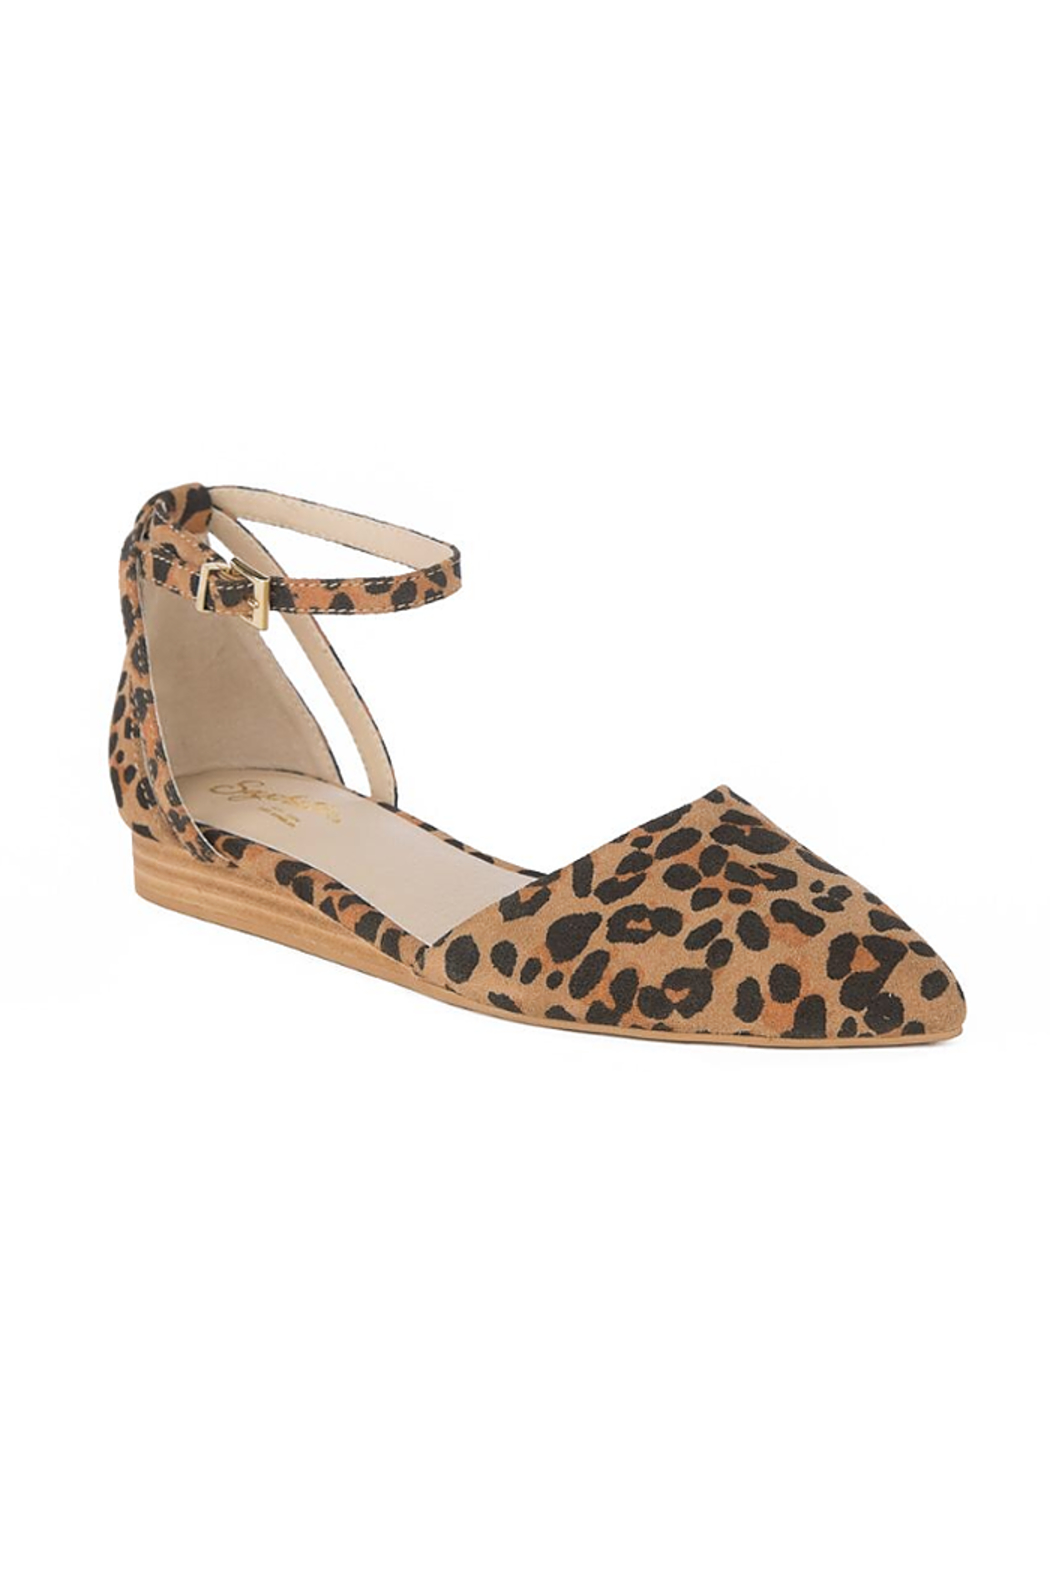 Seychelles Shoes Plateau Leopard Suede Wedge - Side Cropped Image